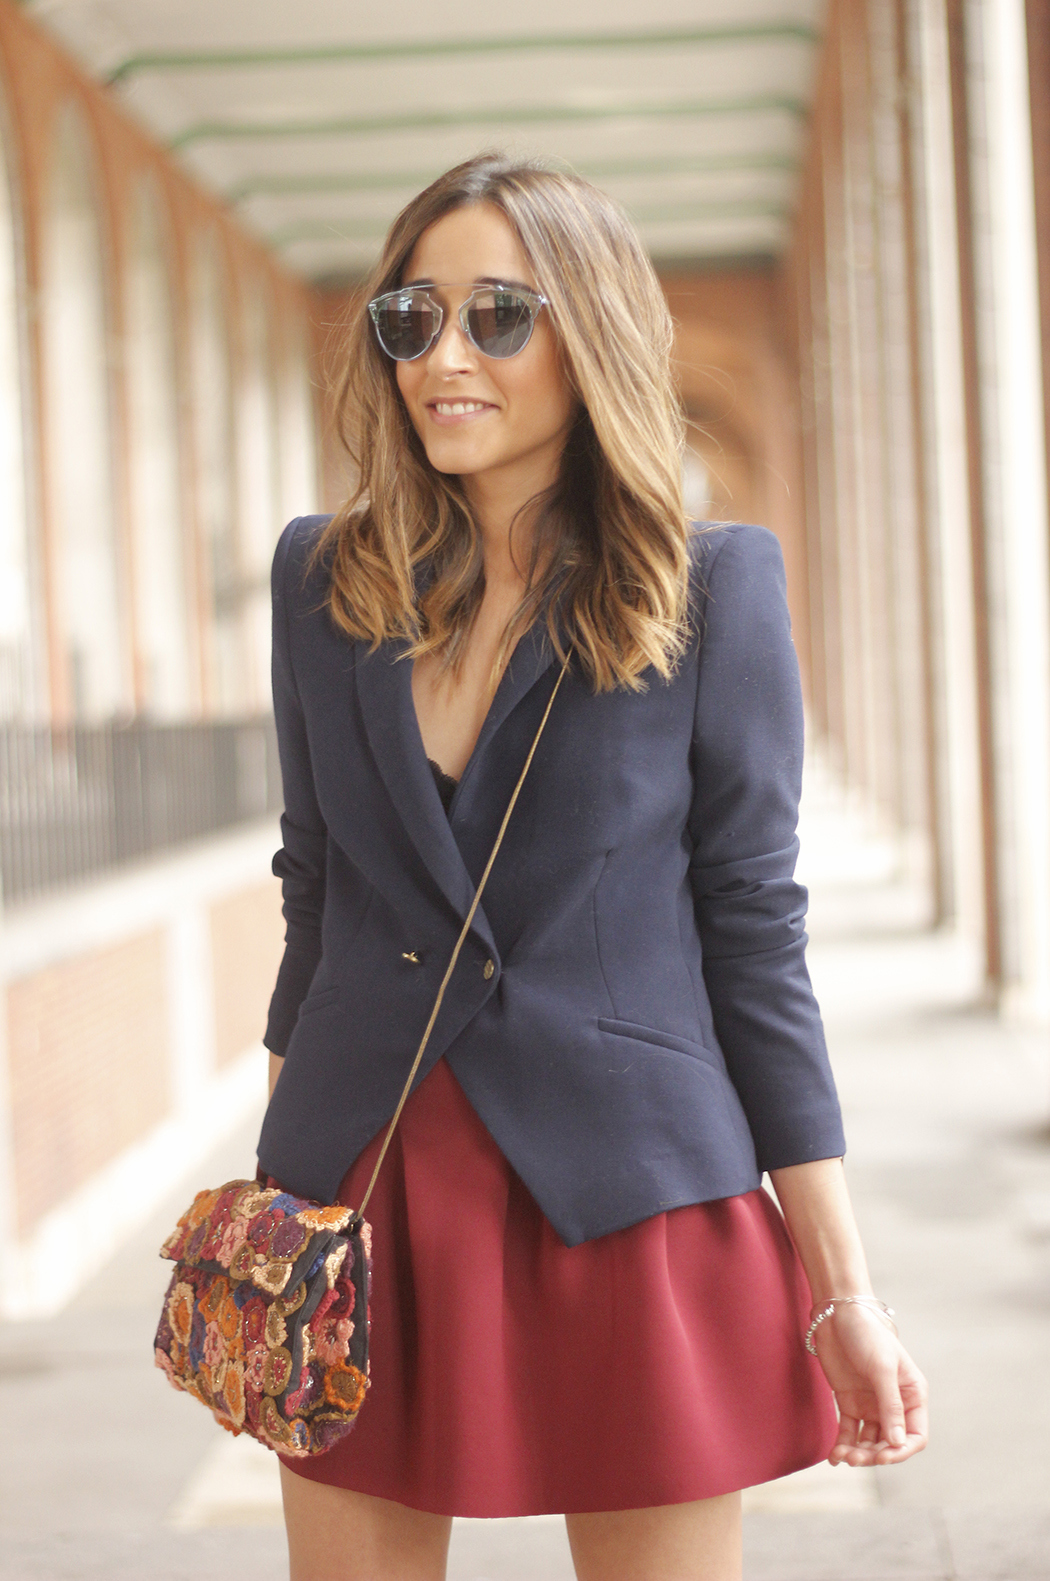 Blue Blazer Burgundy Skirt Outfit10